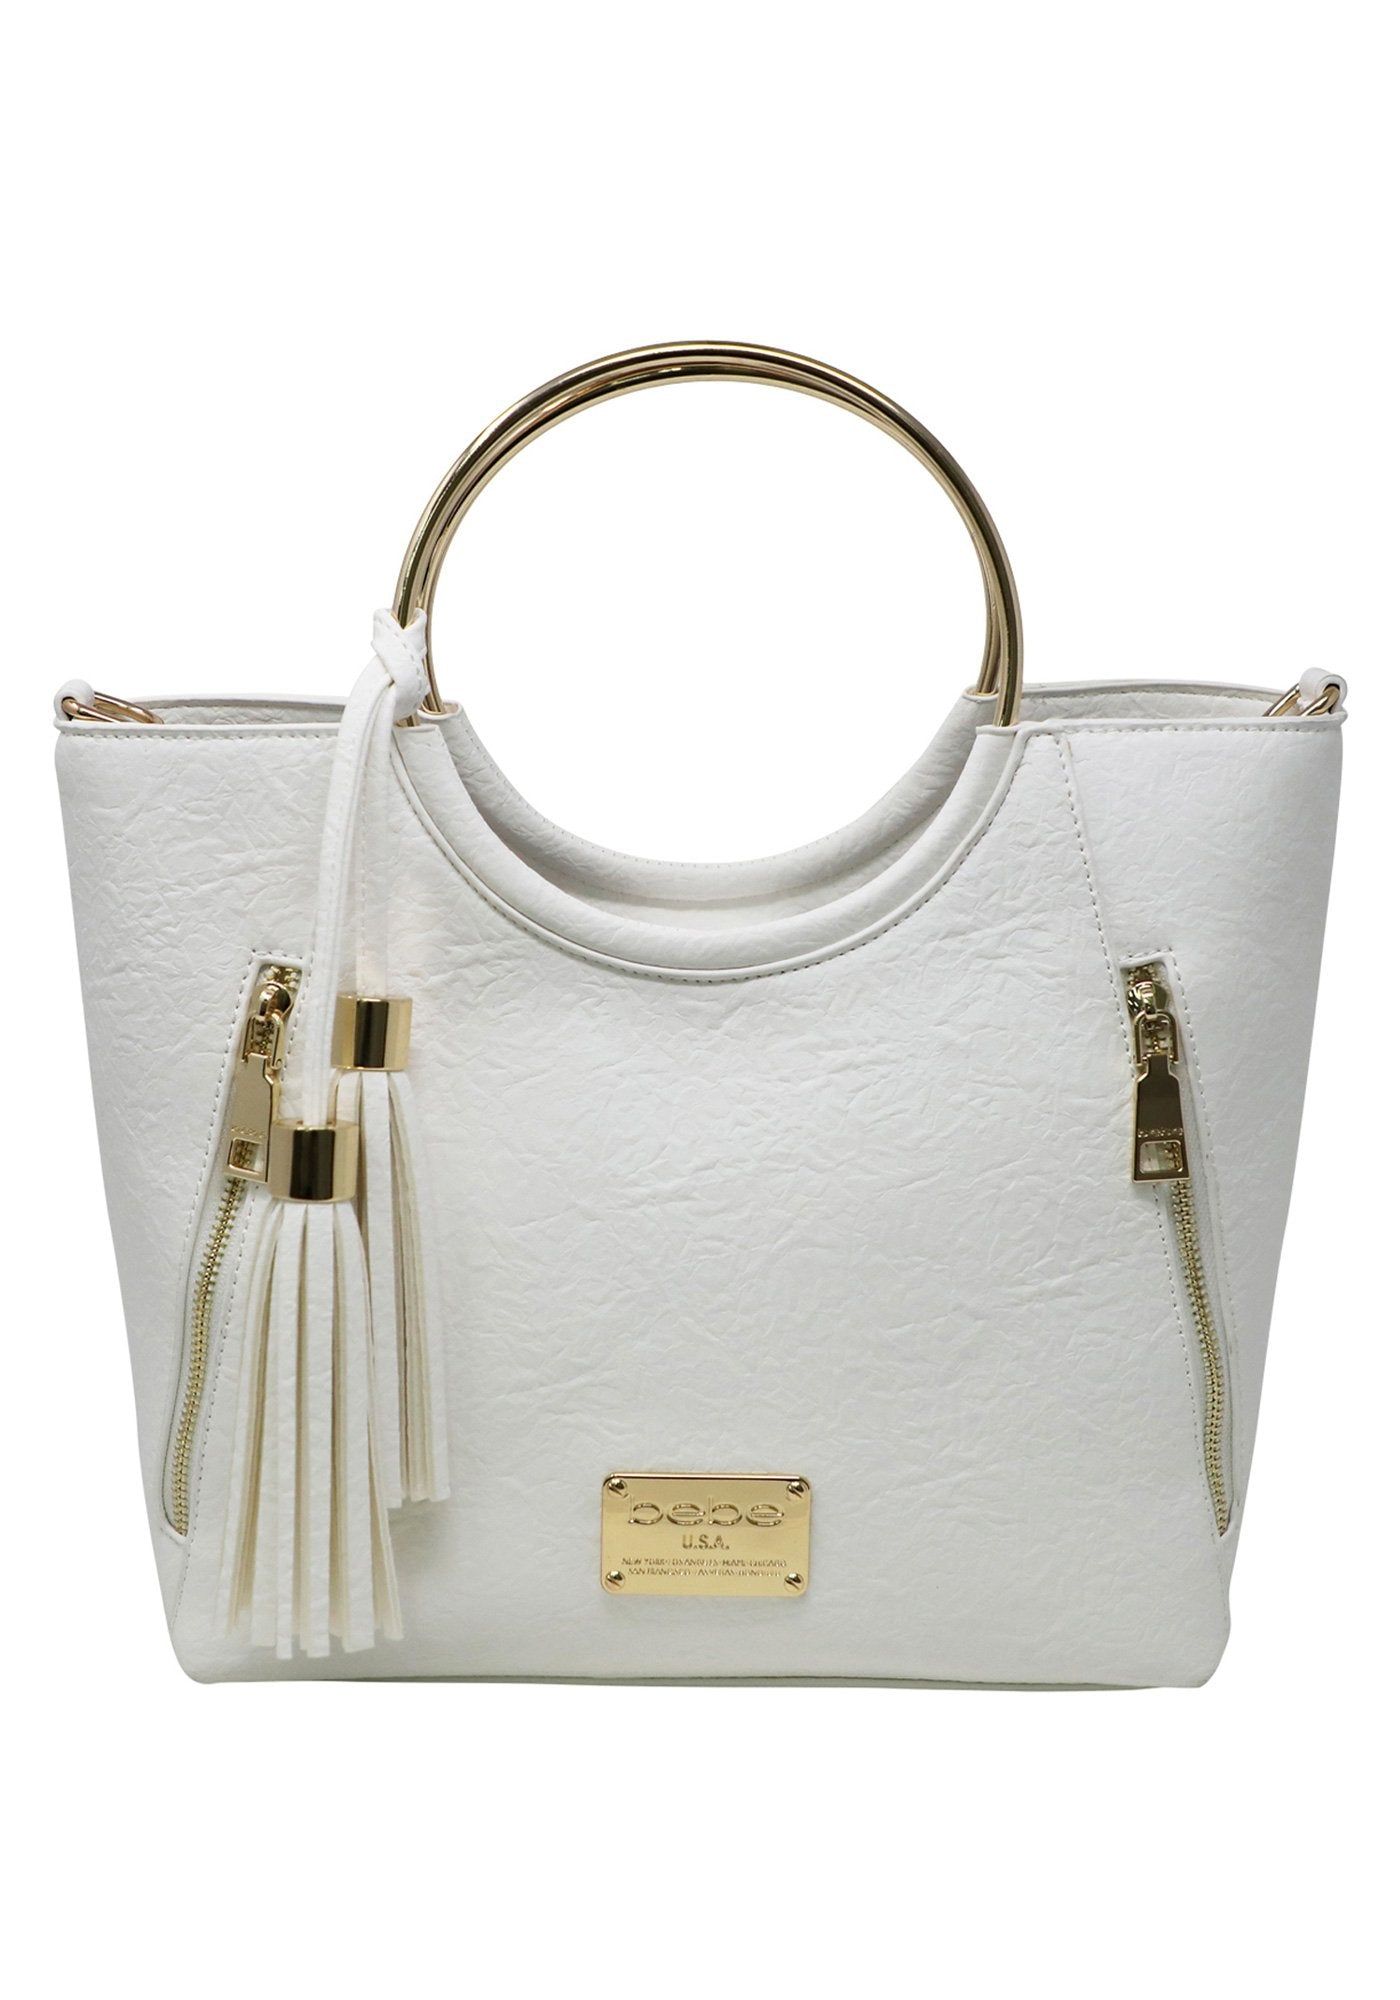 Bebe Women's Rose Ring Handle Satchel, Size O/S in White Polyurethane